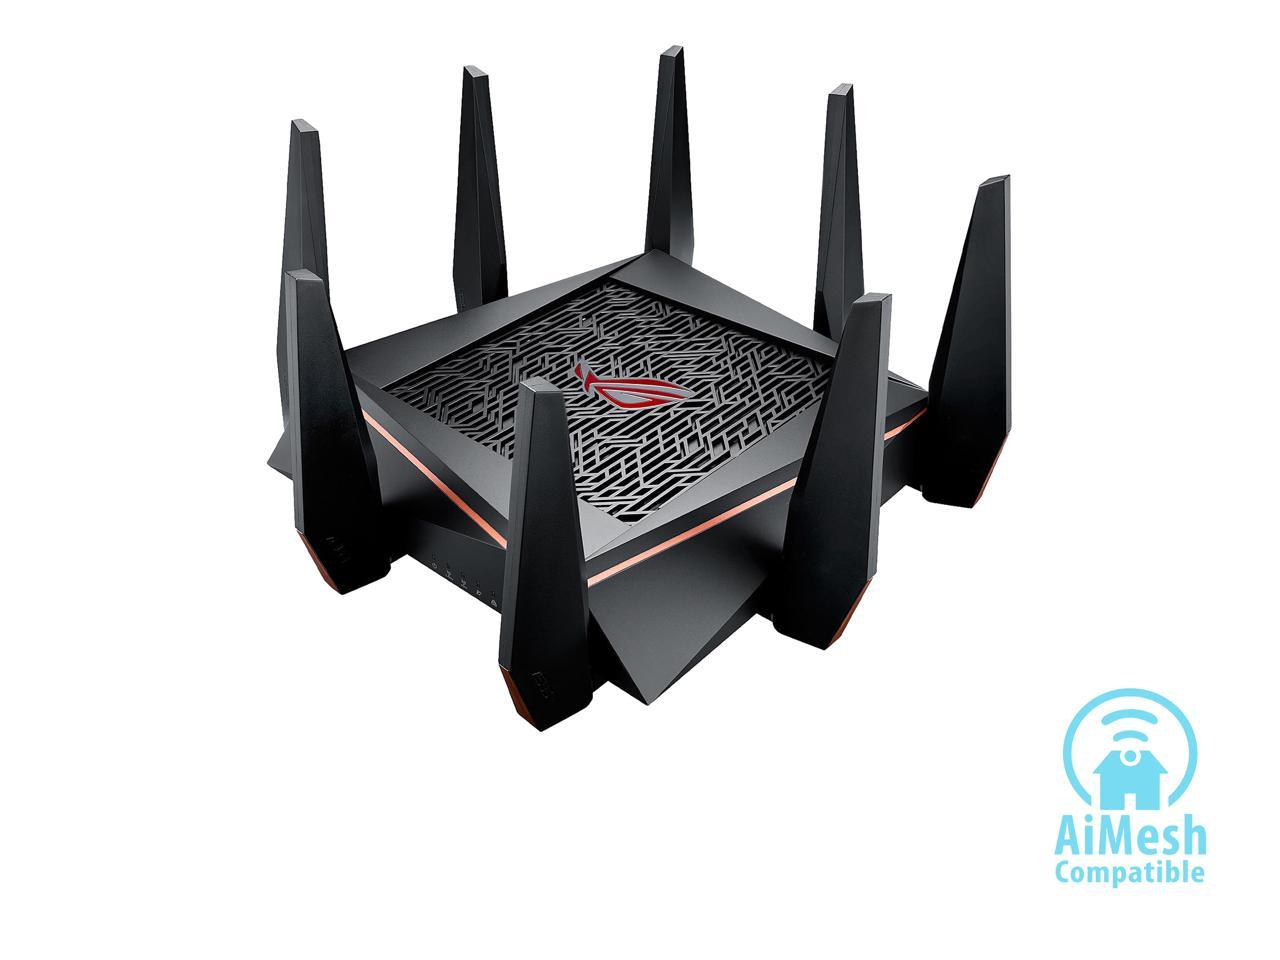 ASUS ROG Rapture GT-AC5300 AC5300 Tri-band Gigabit Wi-Fi Gaming Router